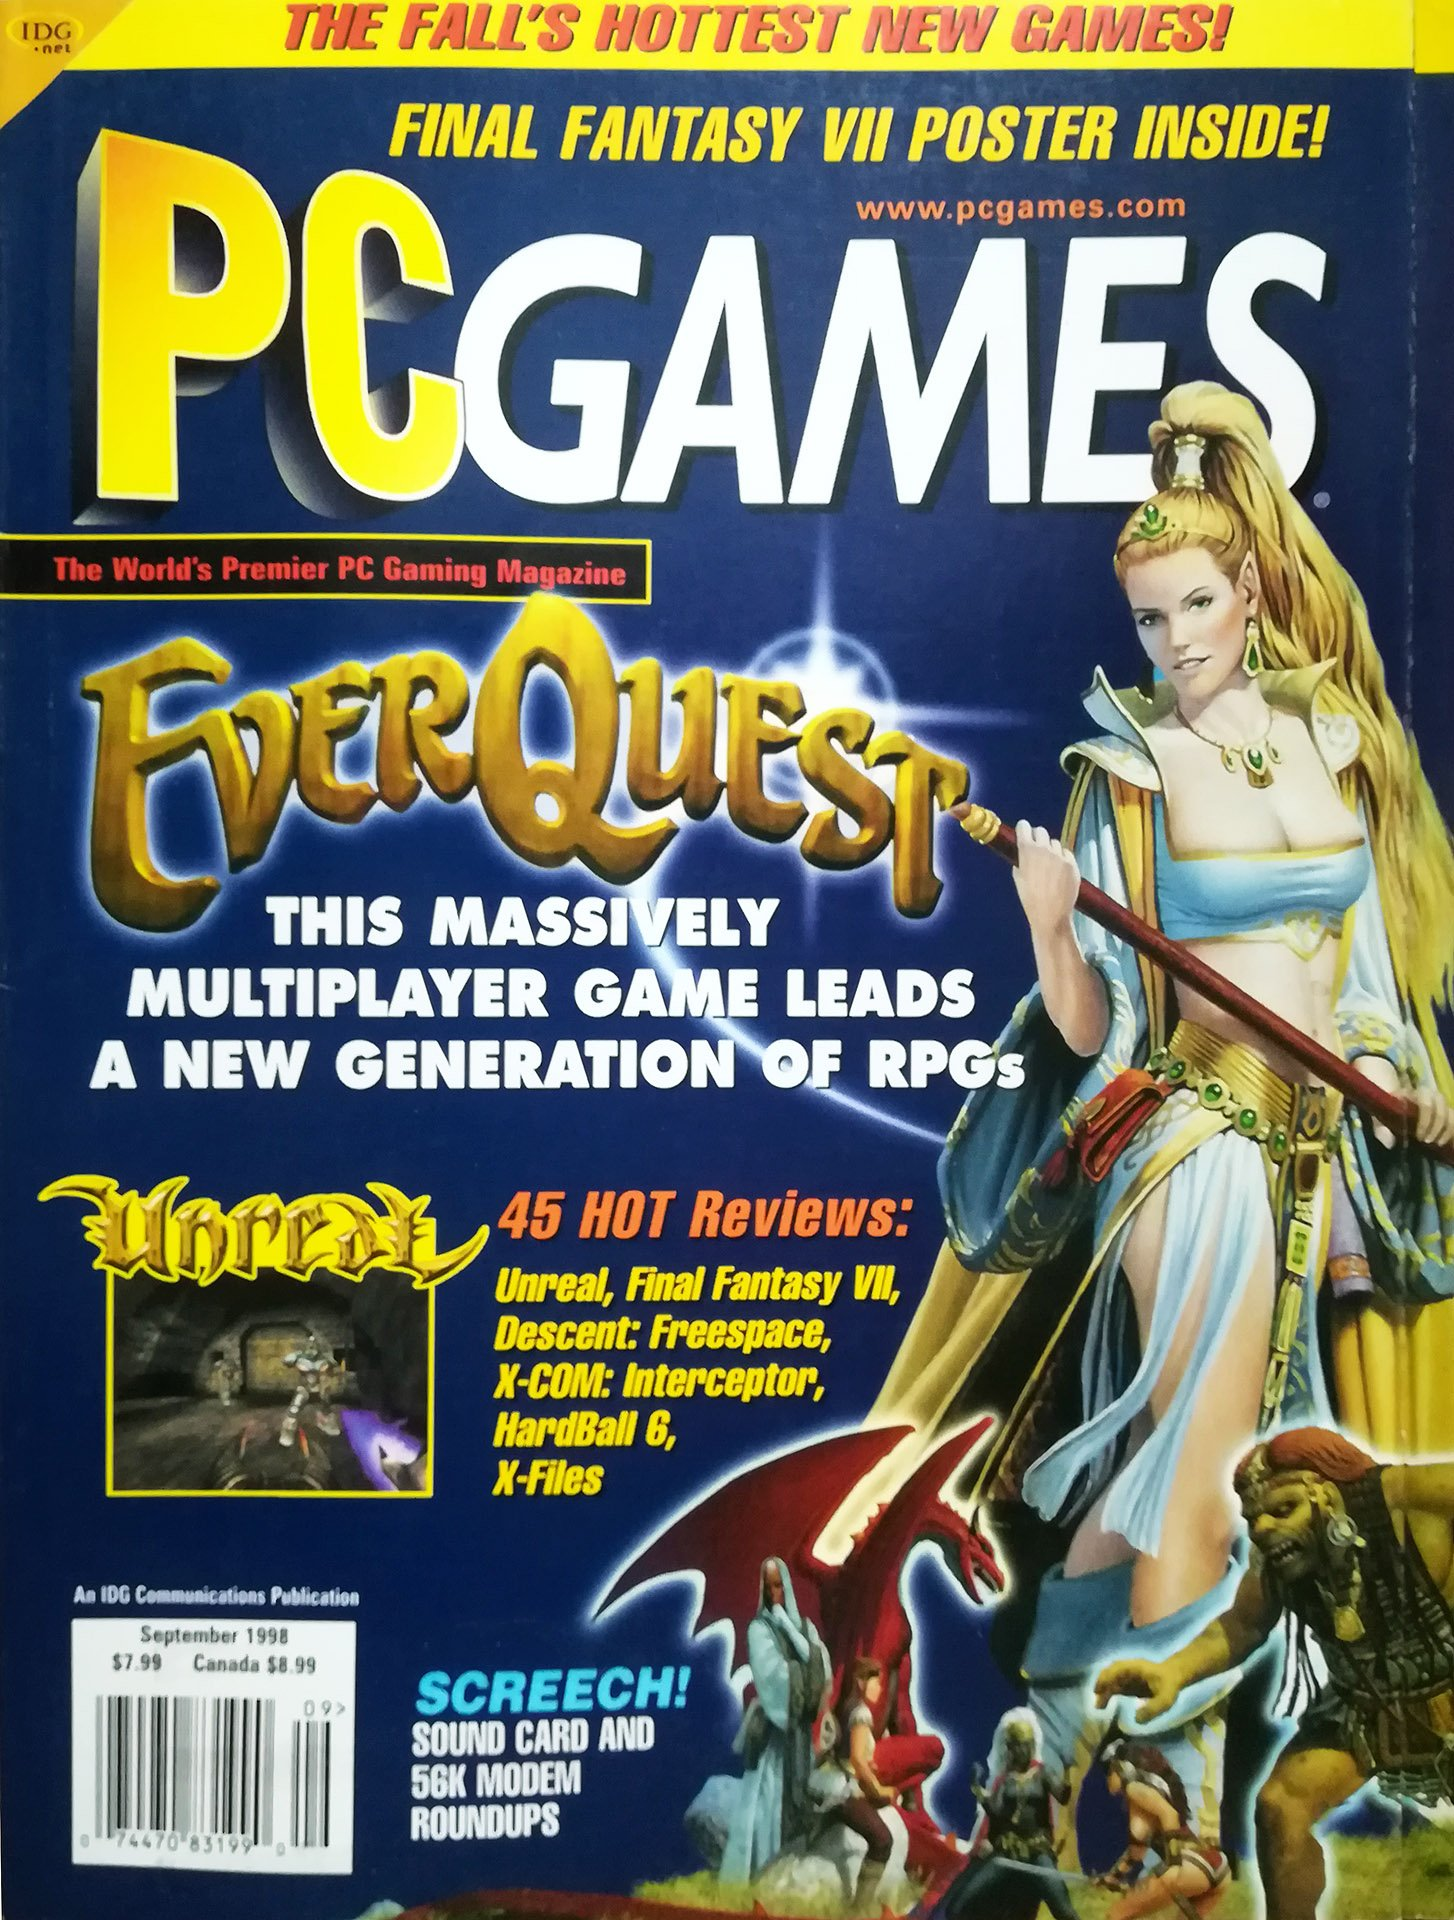 PC Games Vol. 05 No. 07 (September 1998)